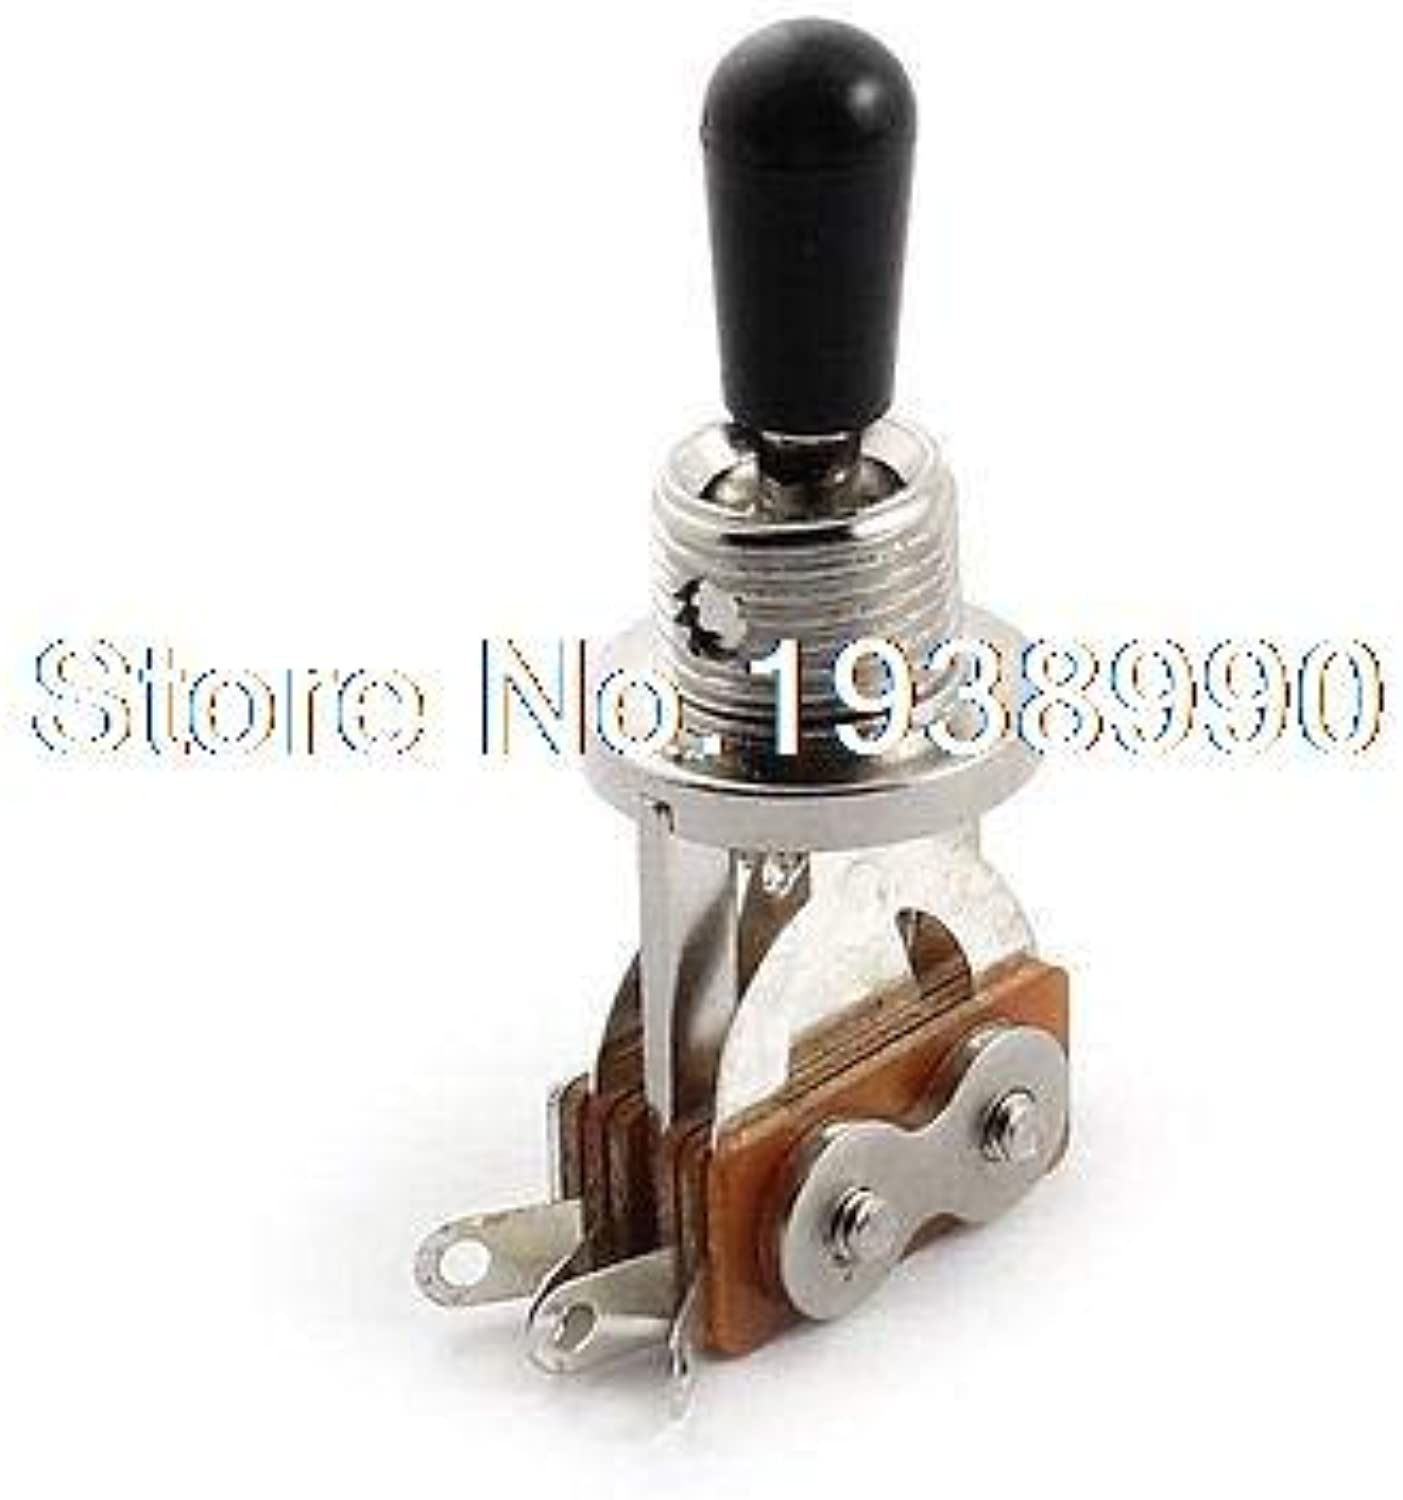 12mm Thread 3 Position SP3T SelfLocking Electric Guitar Toggle Switch